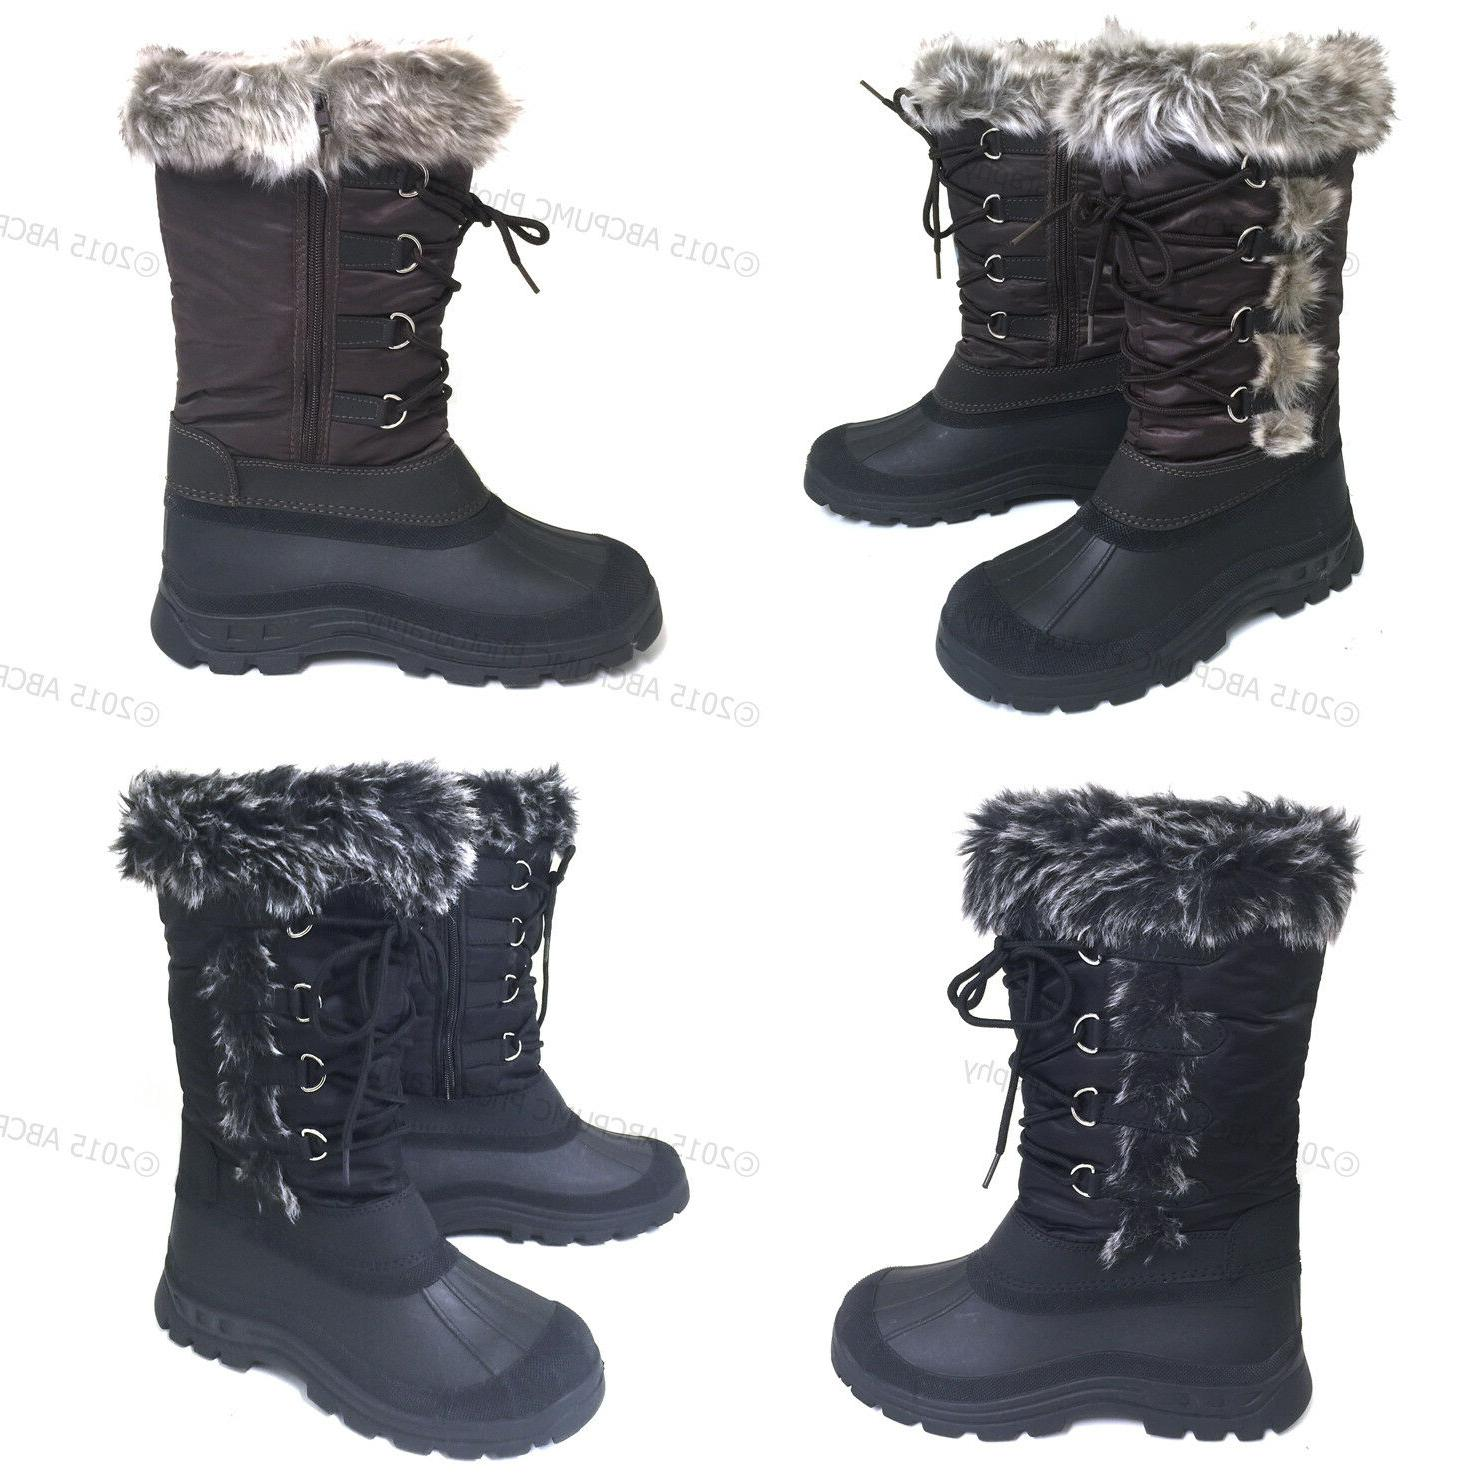 womens winter boots fur warm insulated waterproof